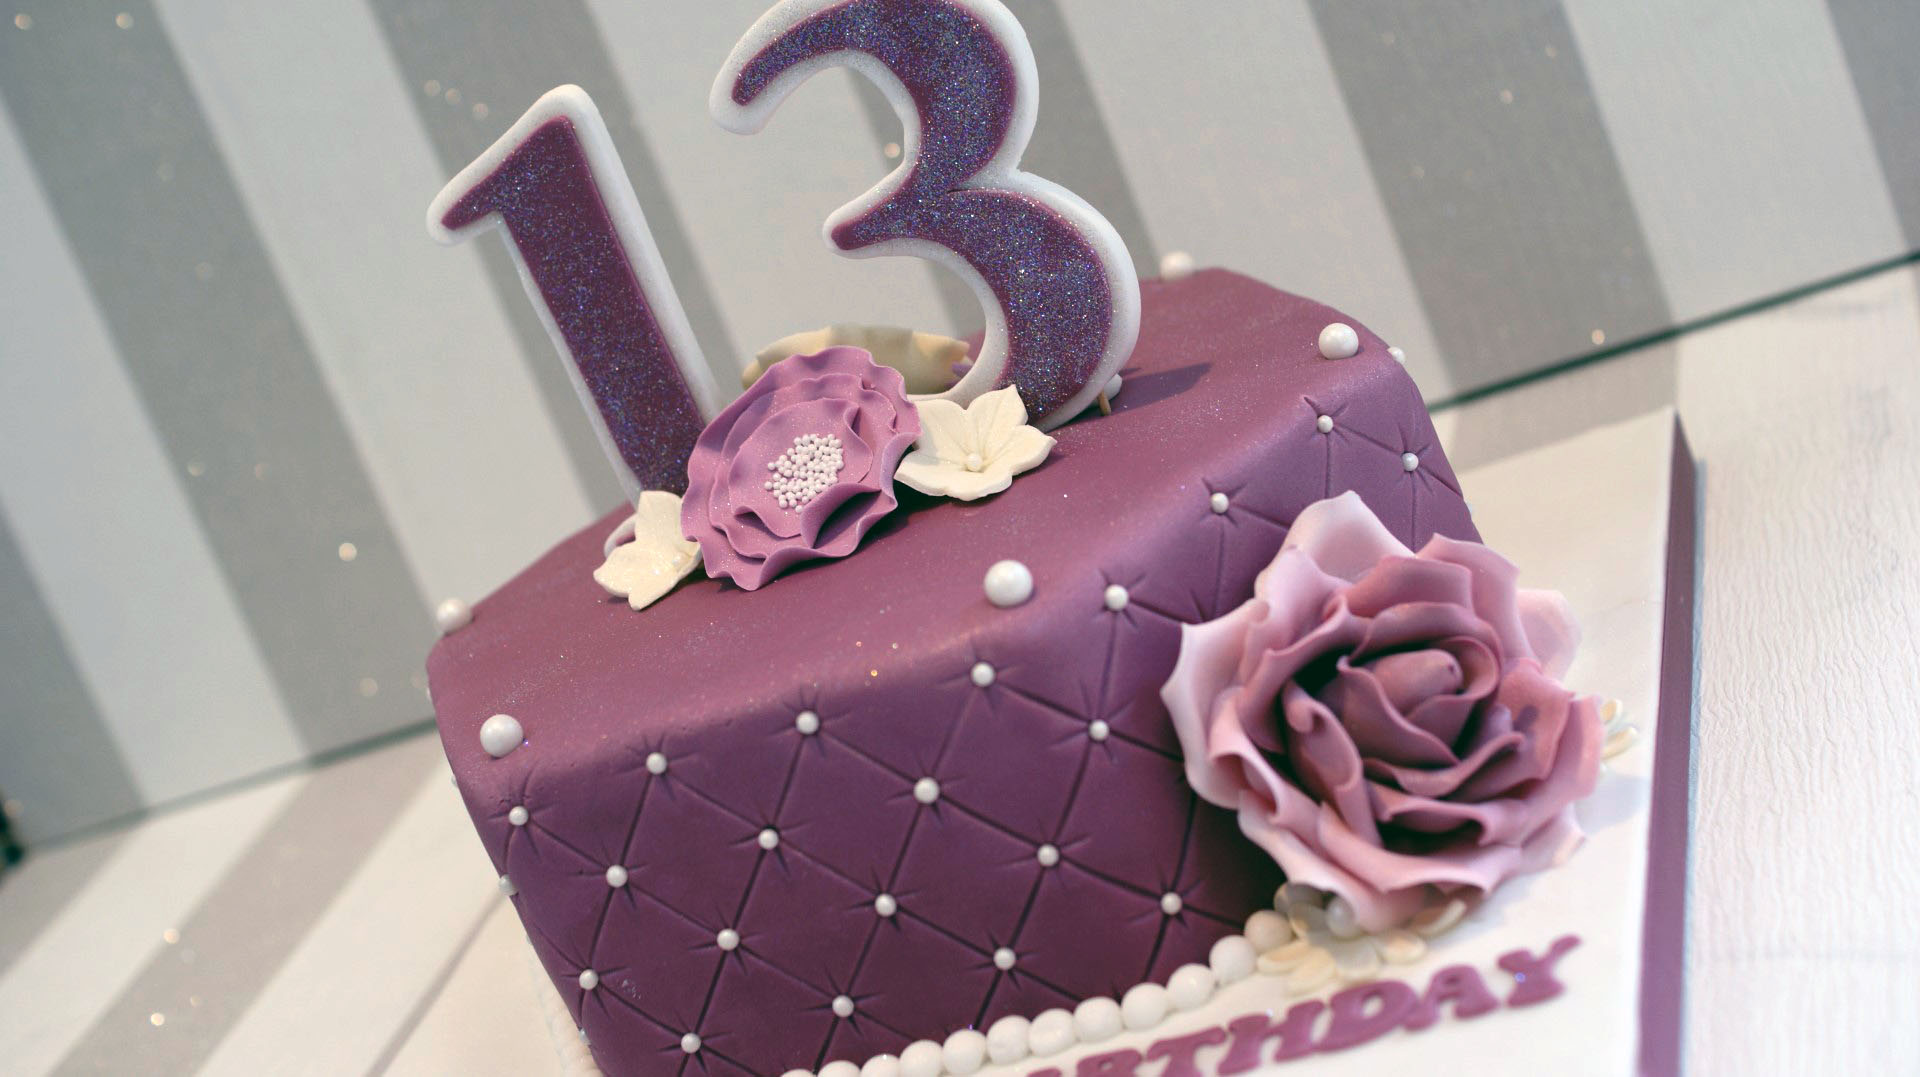 Best 13 Year Old Girl Birthday Cake From Pretty 13th Bakealous Source Image